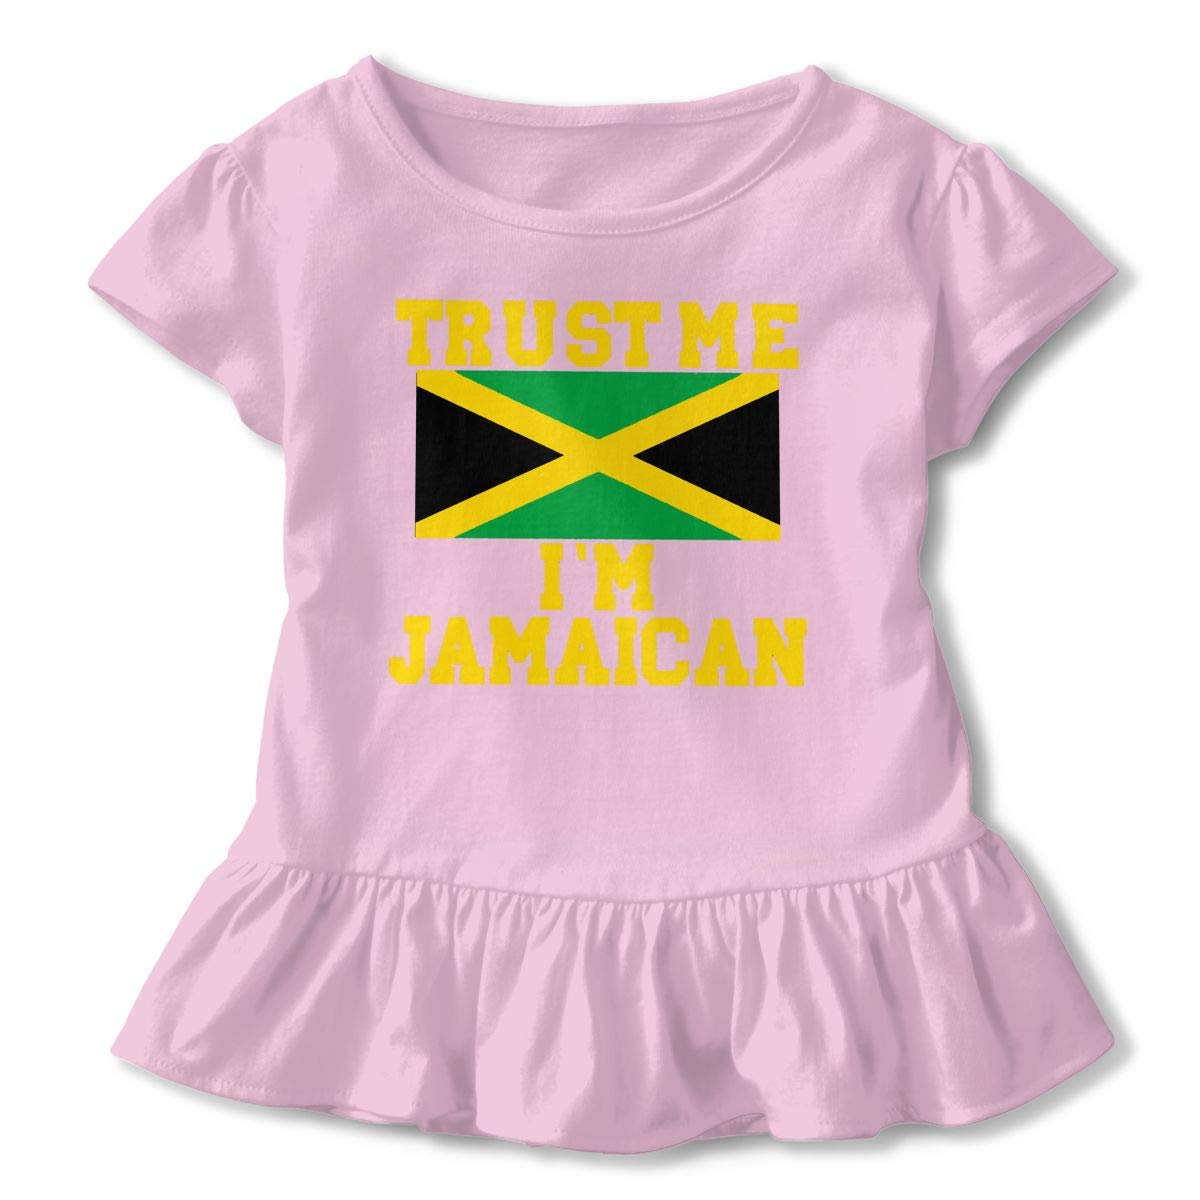 QUZtww Trust Me Im Jamaican Toddler Baby Girl Basic Printed Ruffle Short Sleeve Cotton T Shirts Tops Tee Clothes Pink